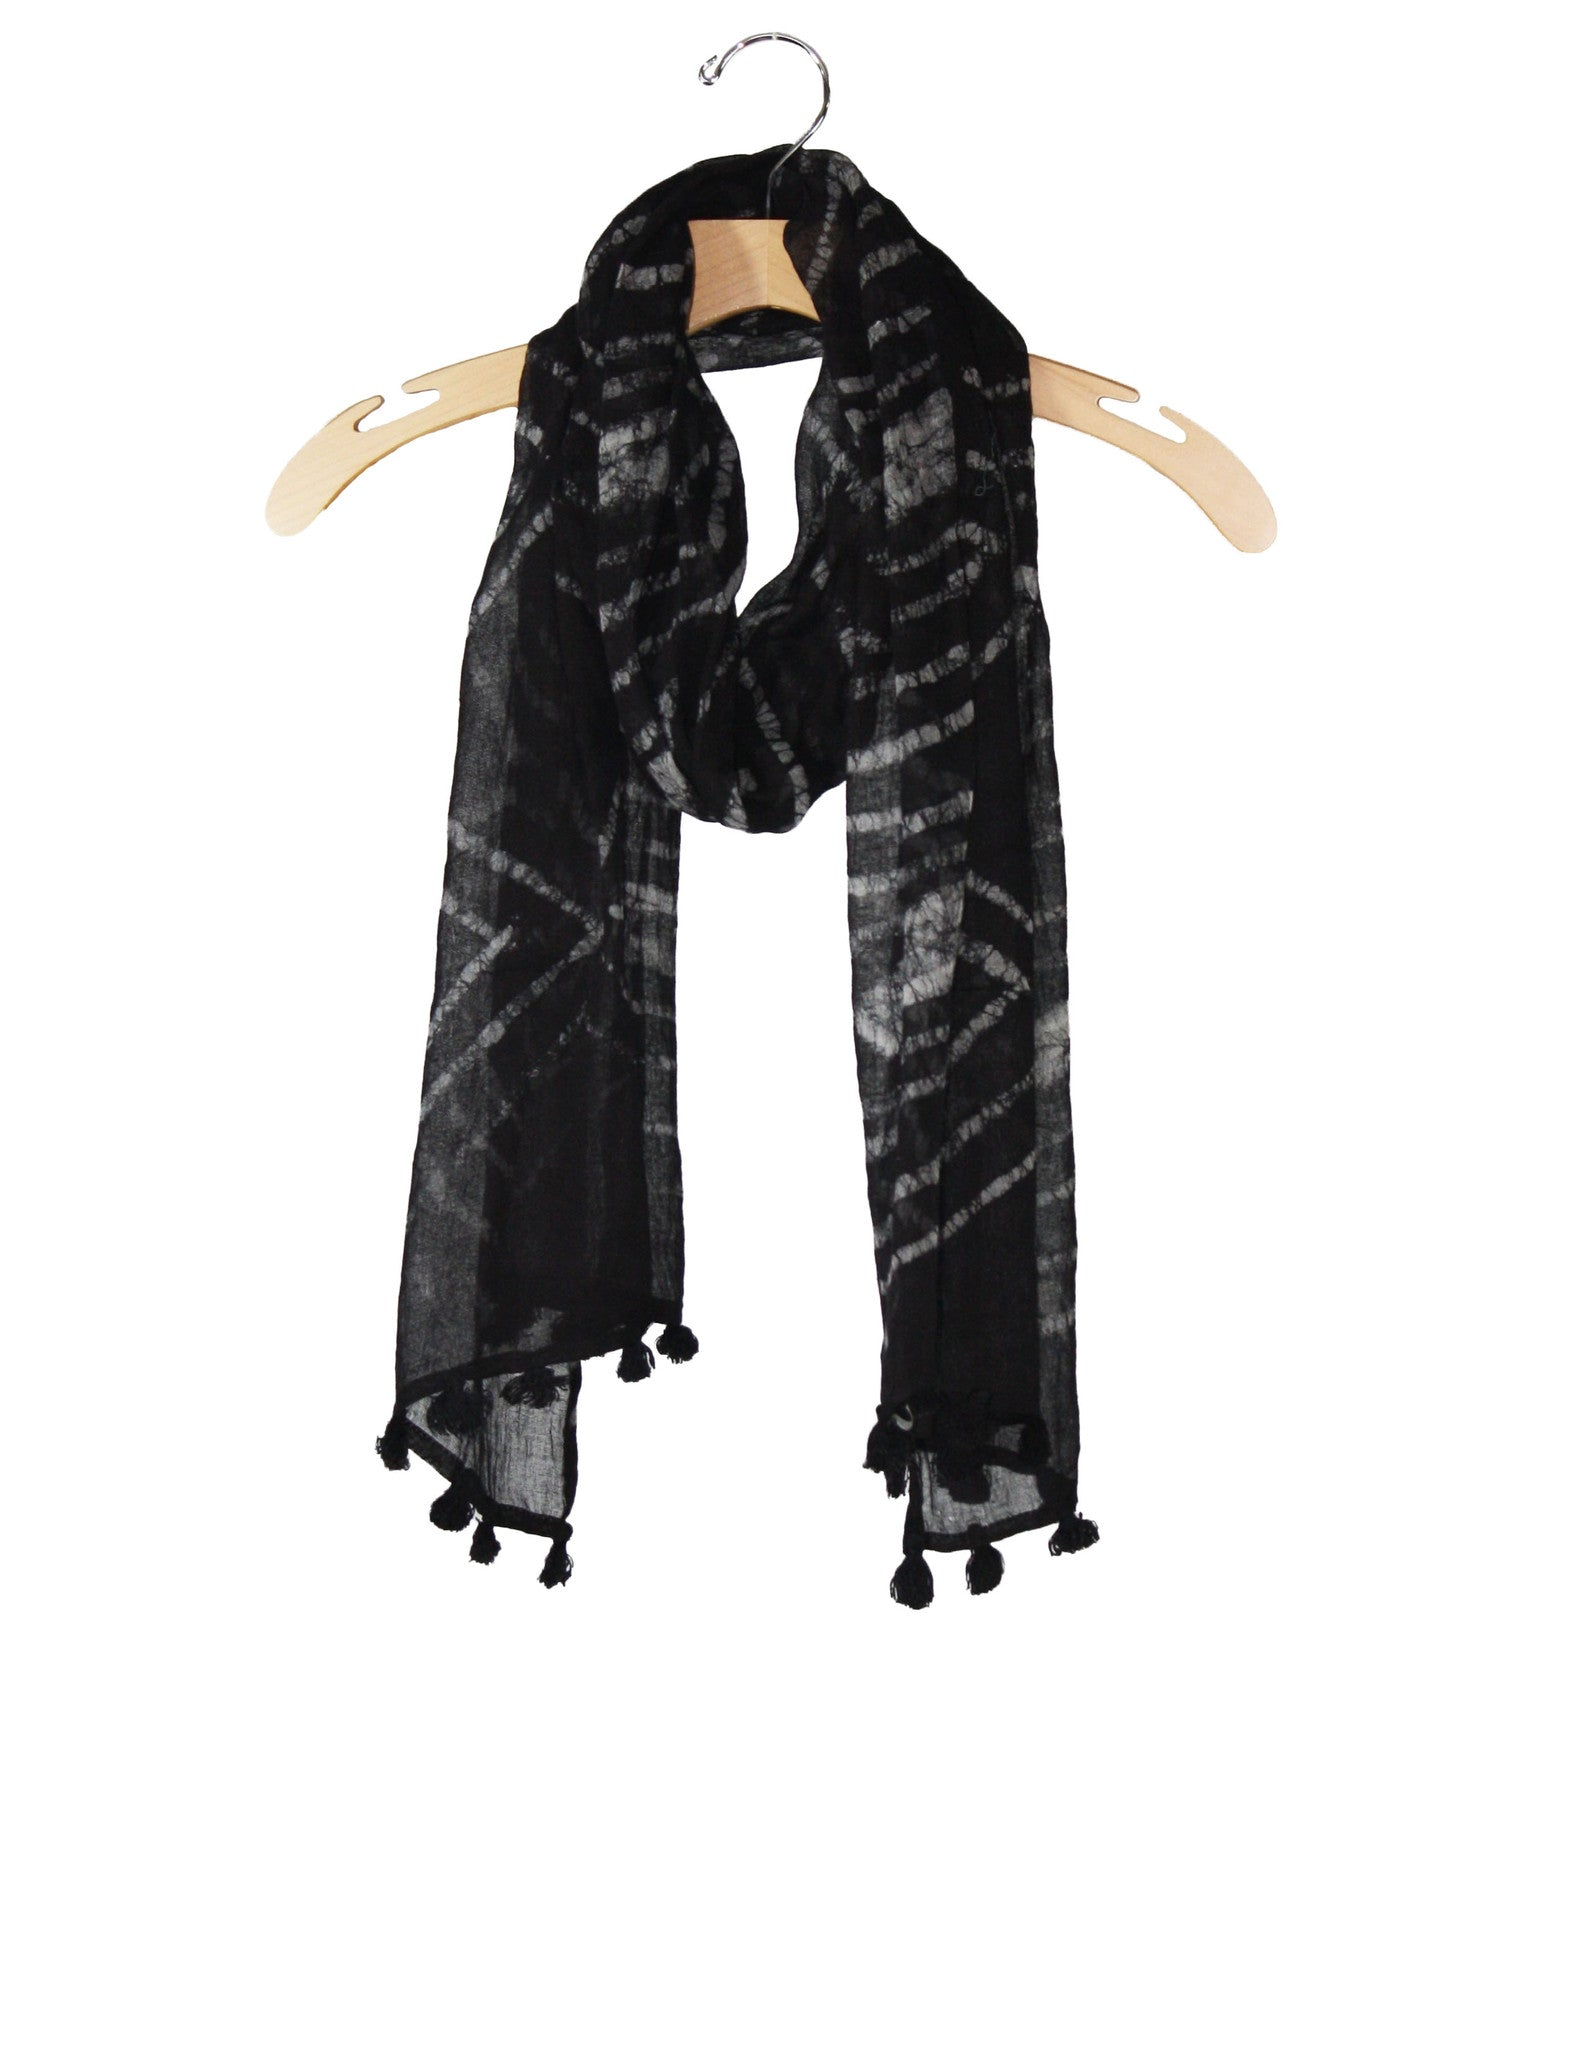 Gatsby Scarf / Fair Trade Fashion